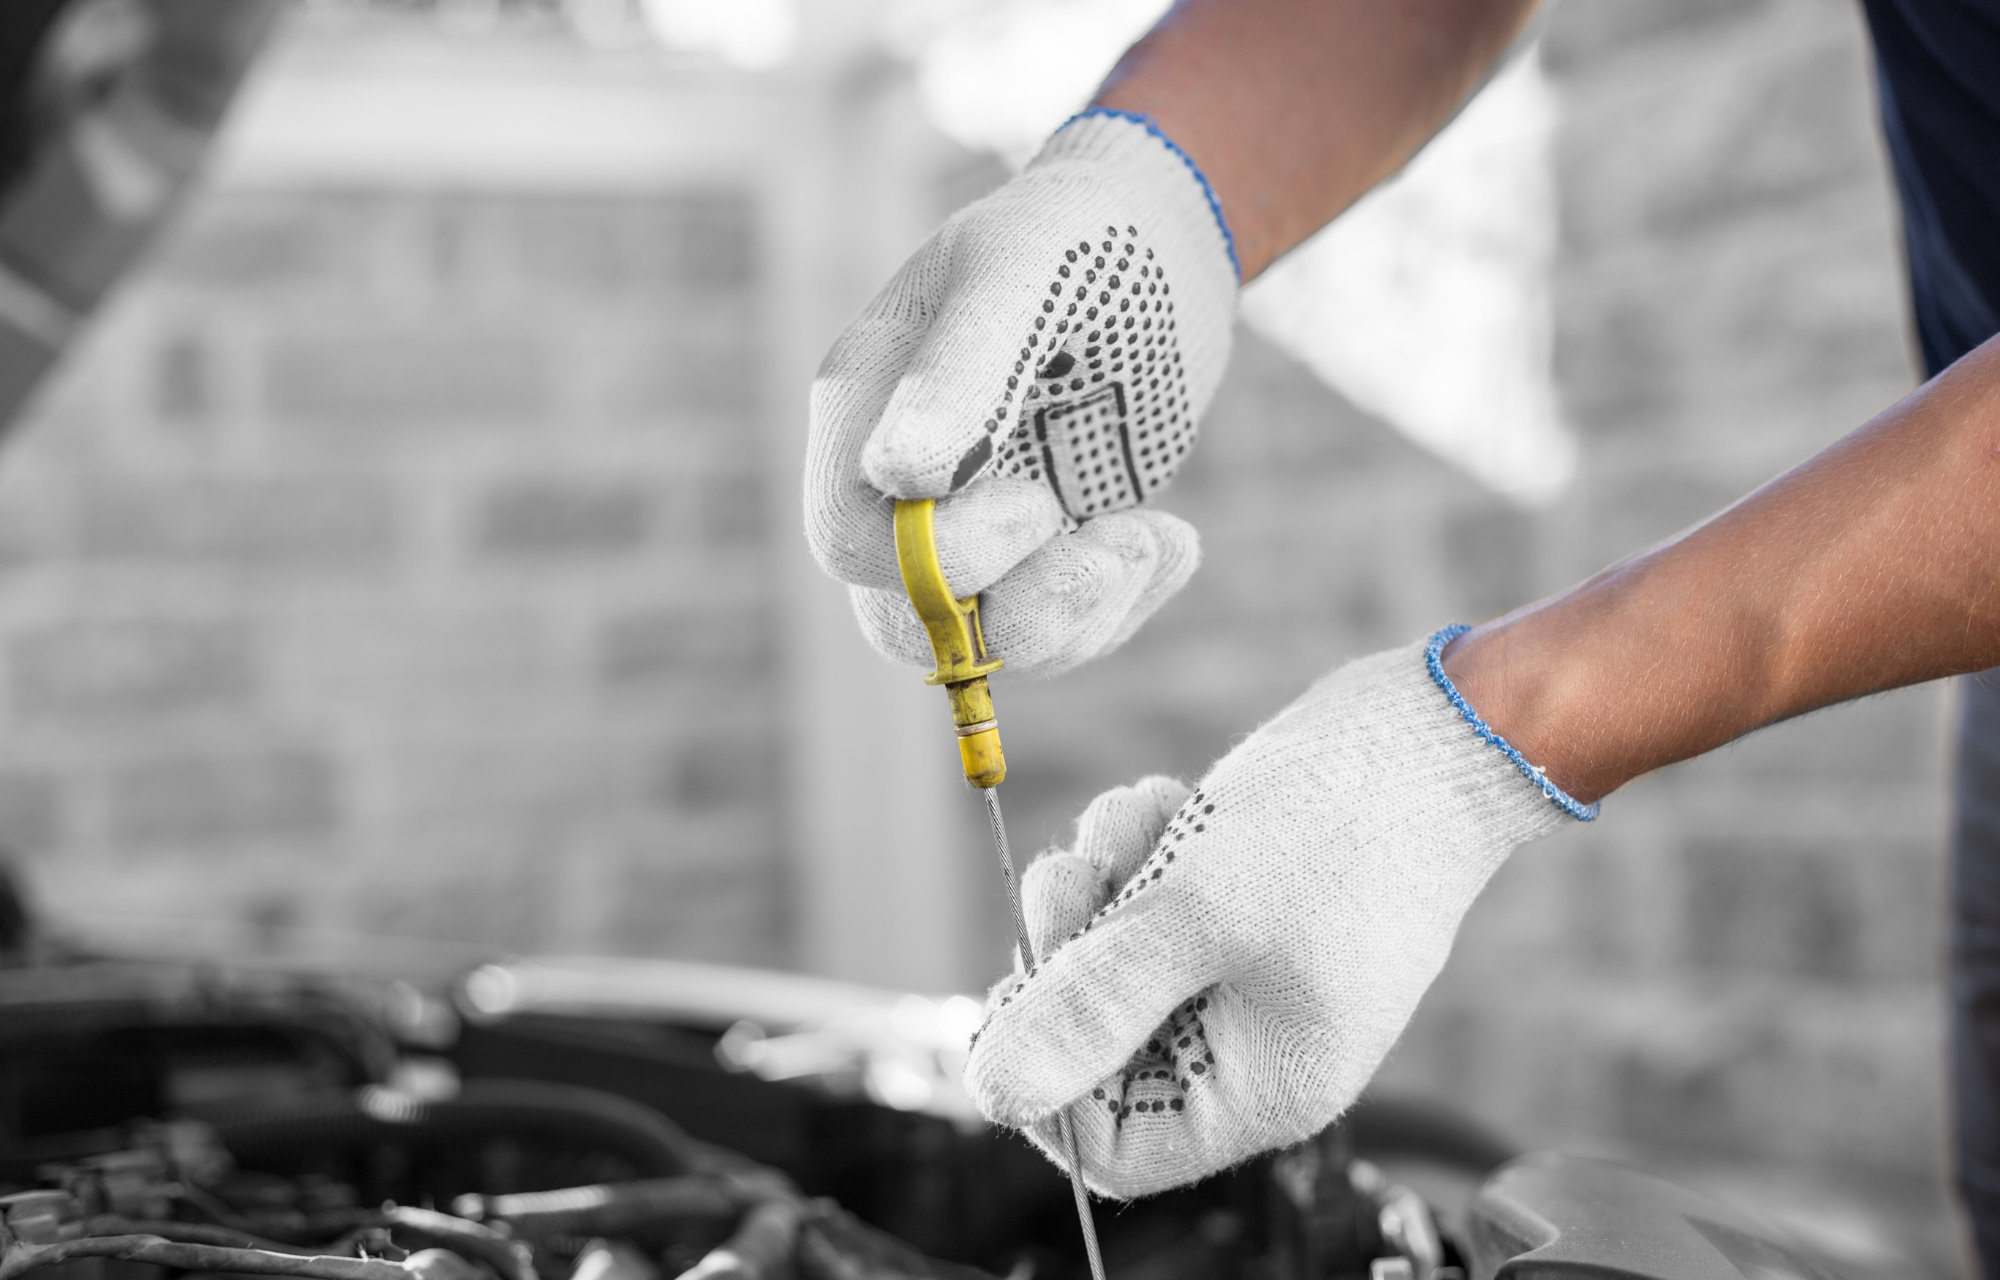 How to Check the Engine Oil Levels of Your Honda